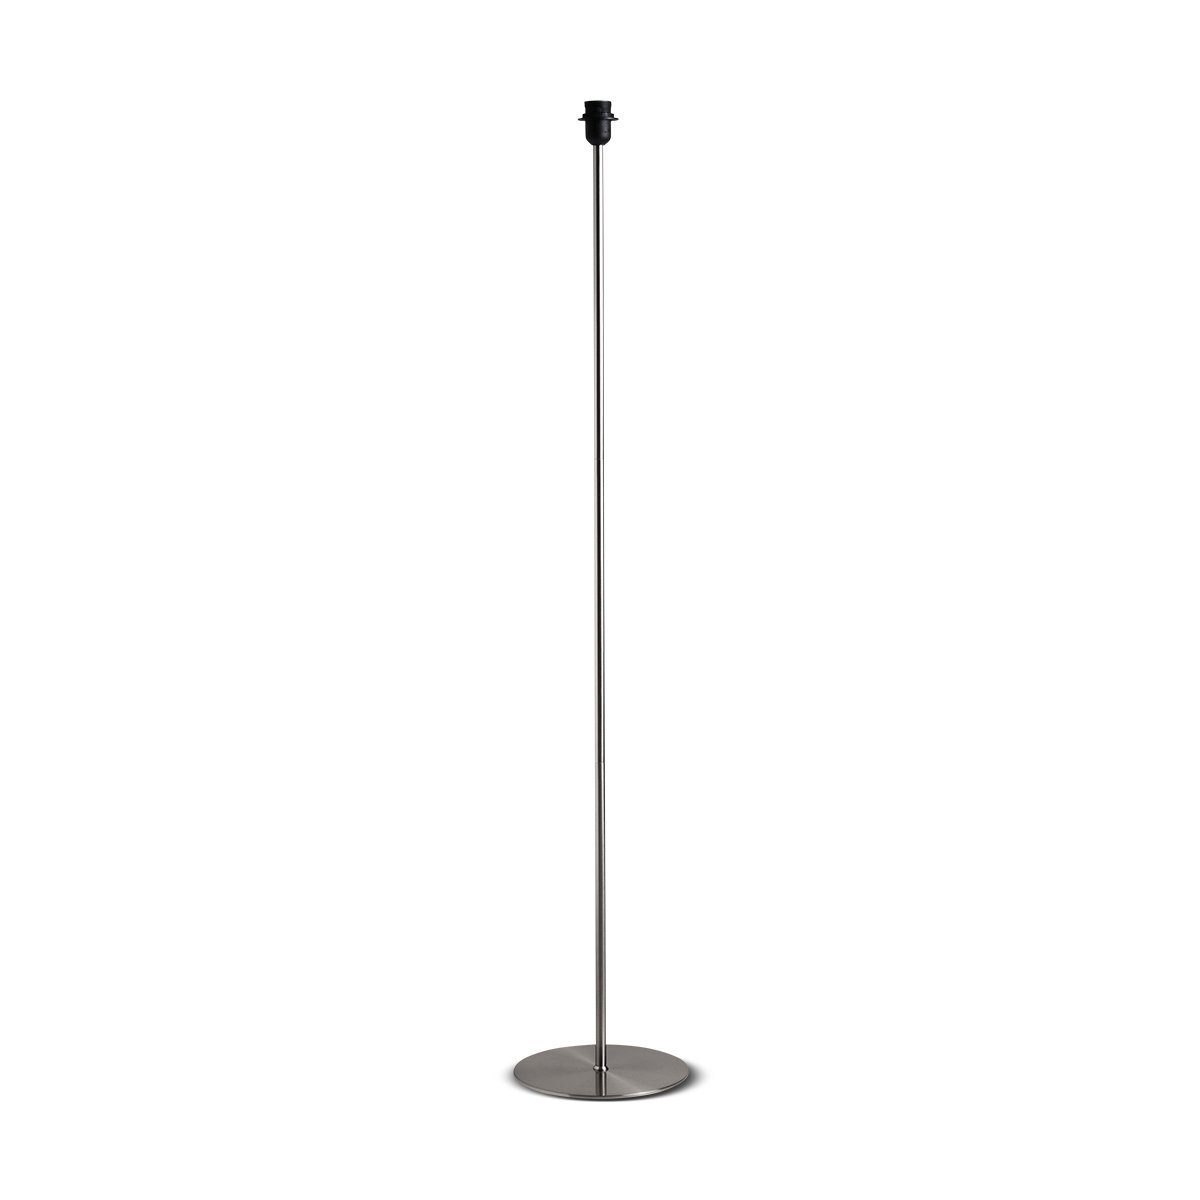 HOME SWEET HOME vloerlamp lift ↕ 138 cm mat staal